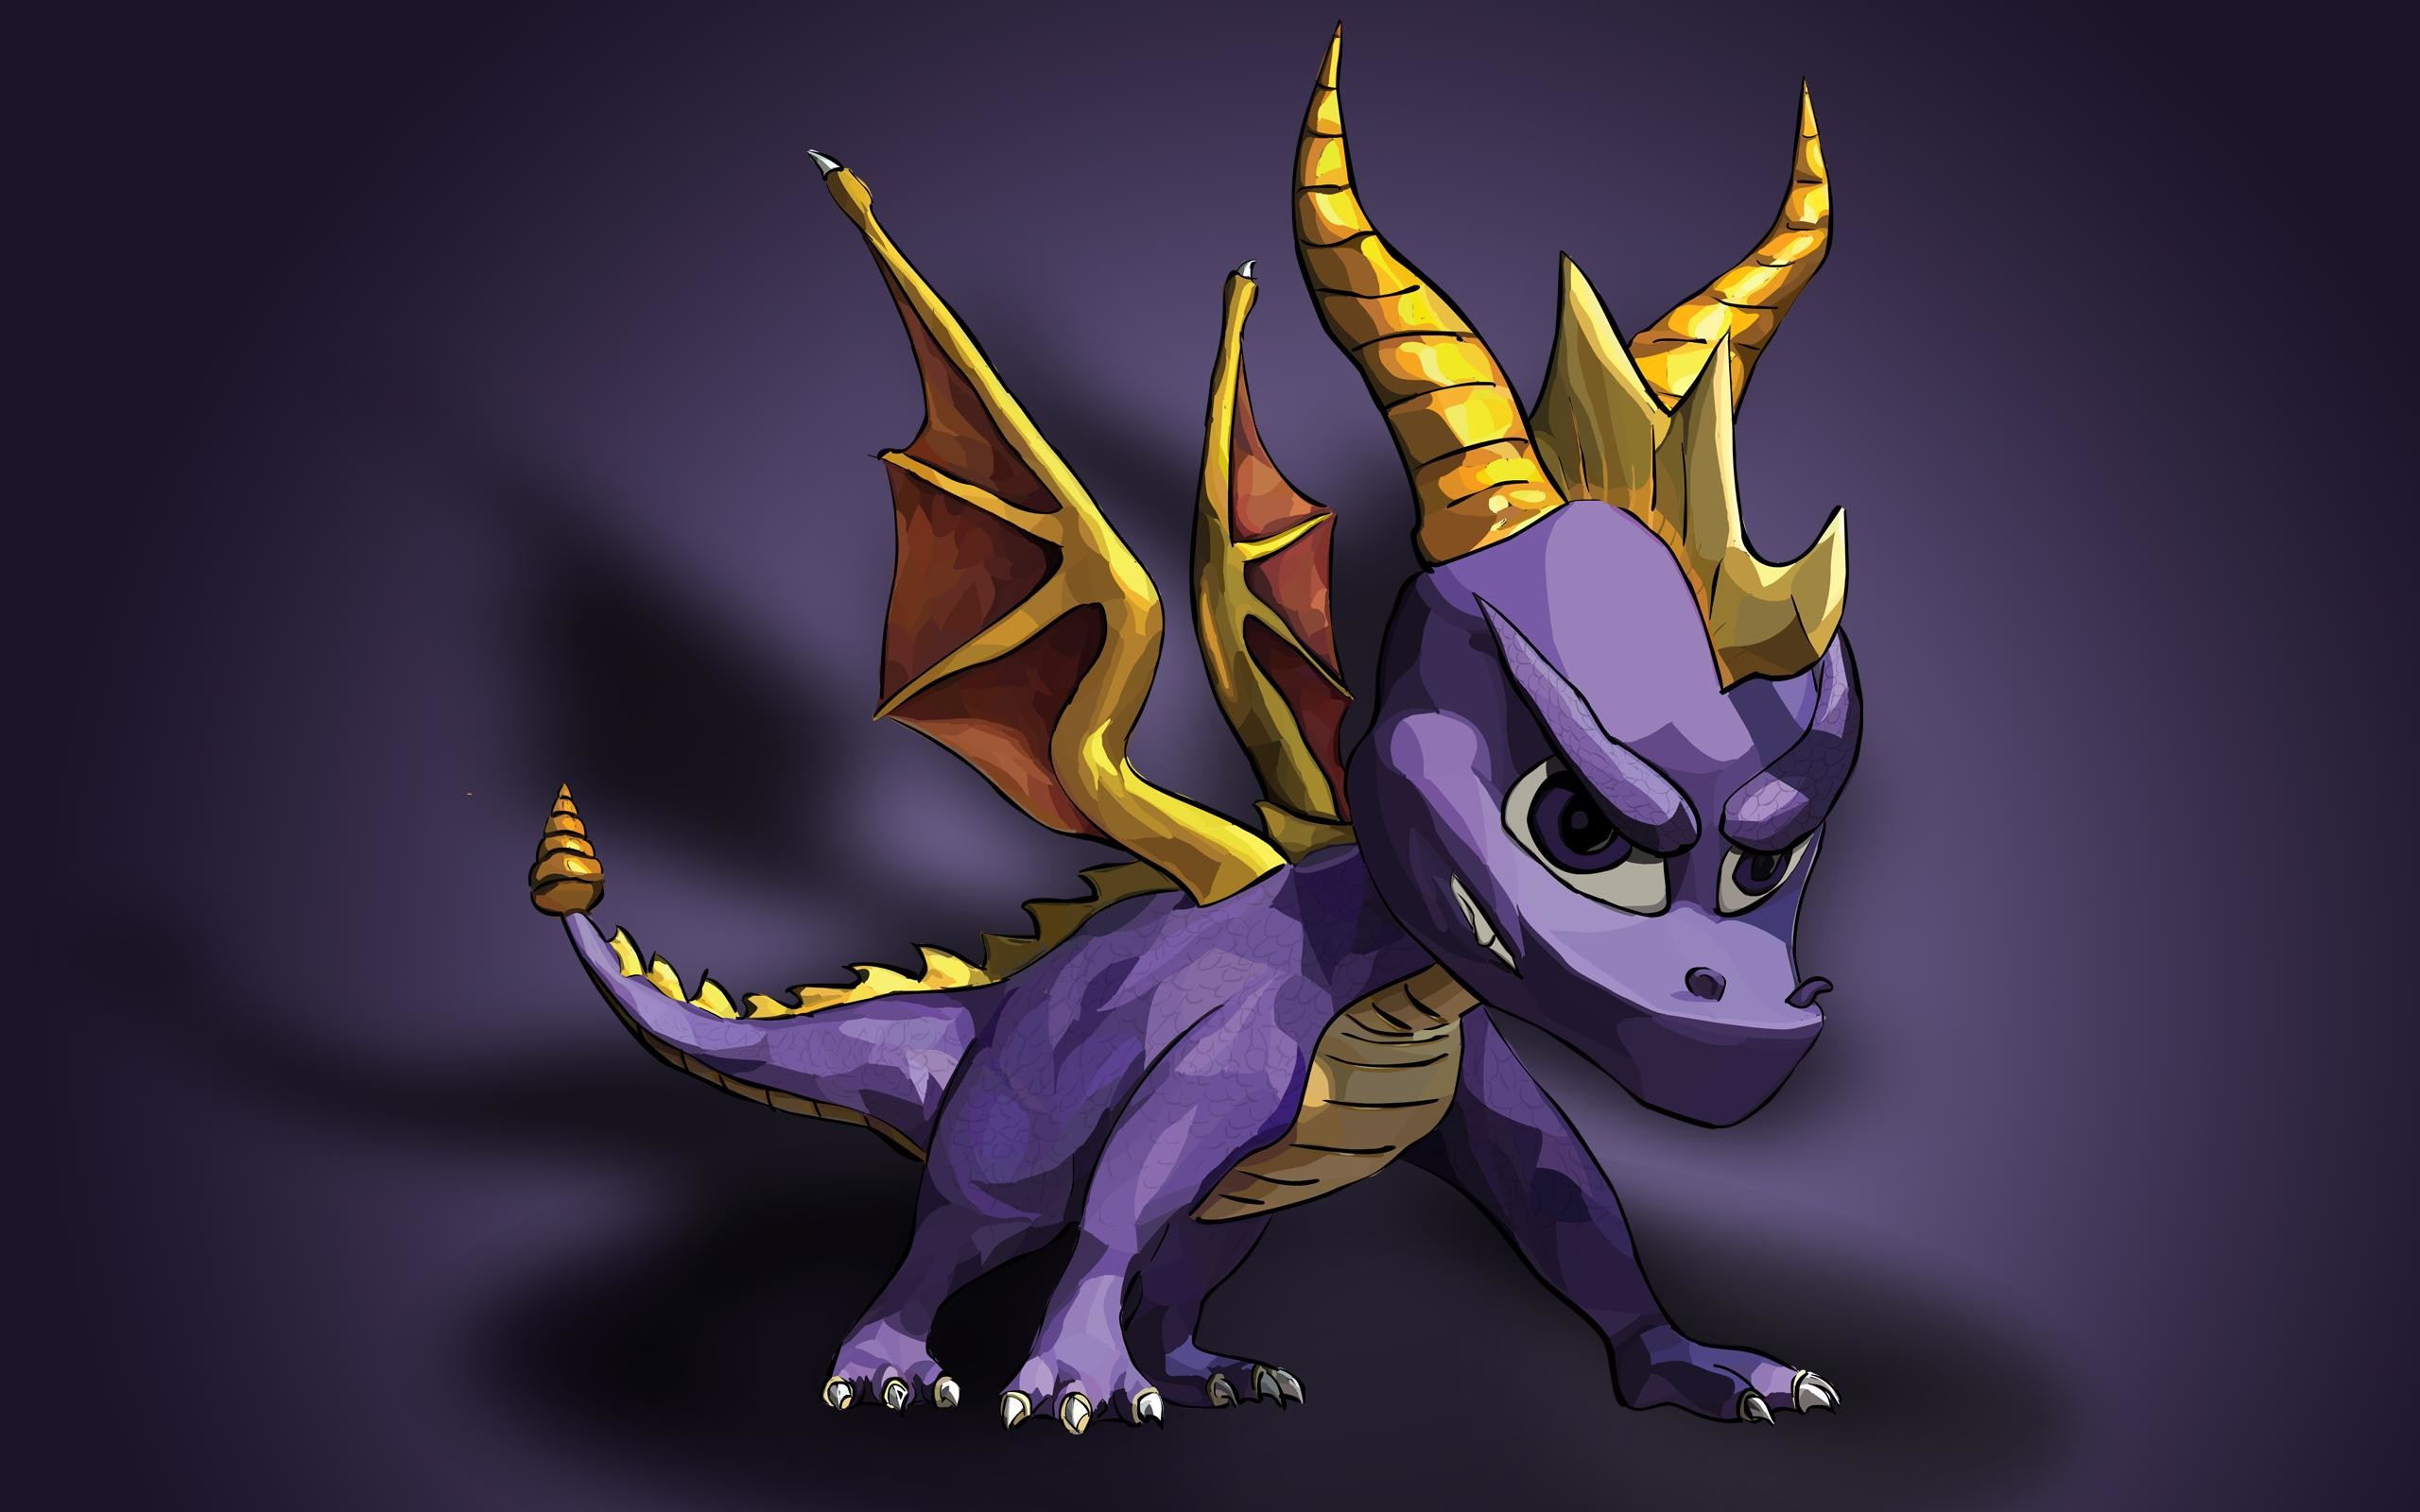 Spyro The Dragon Wallpapers – Wallpaper Cave